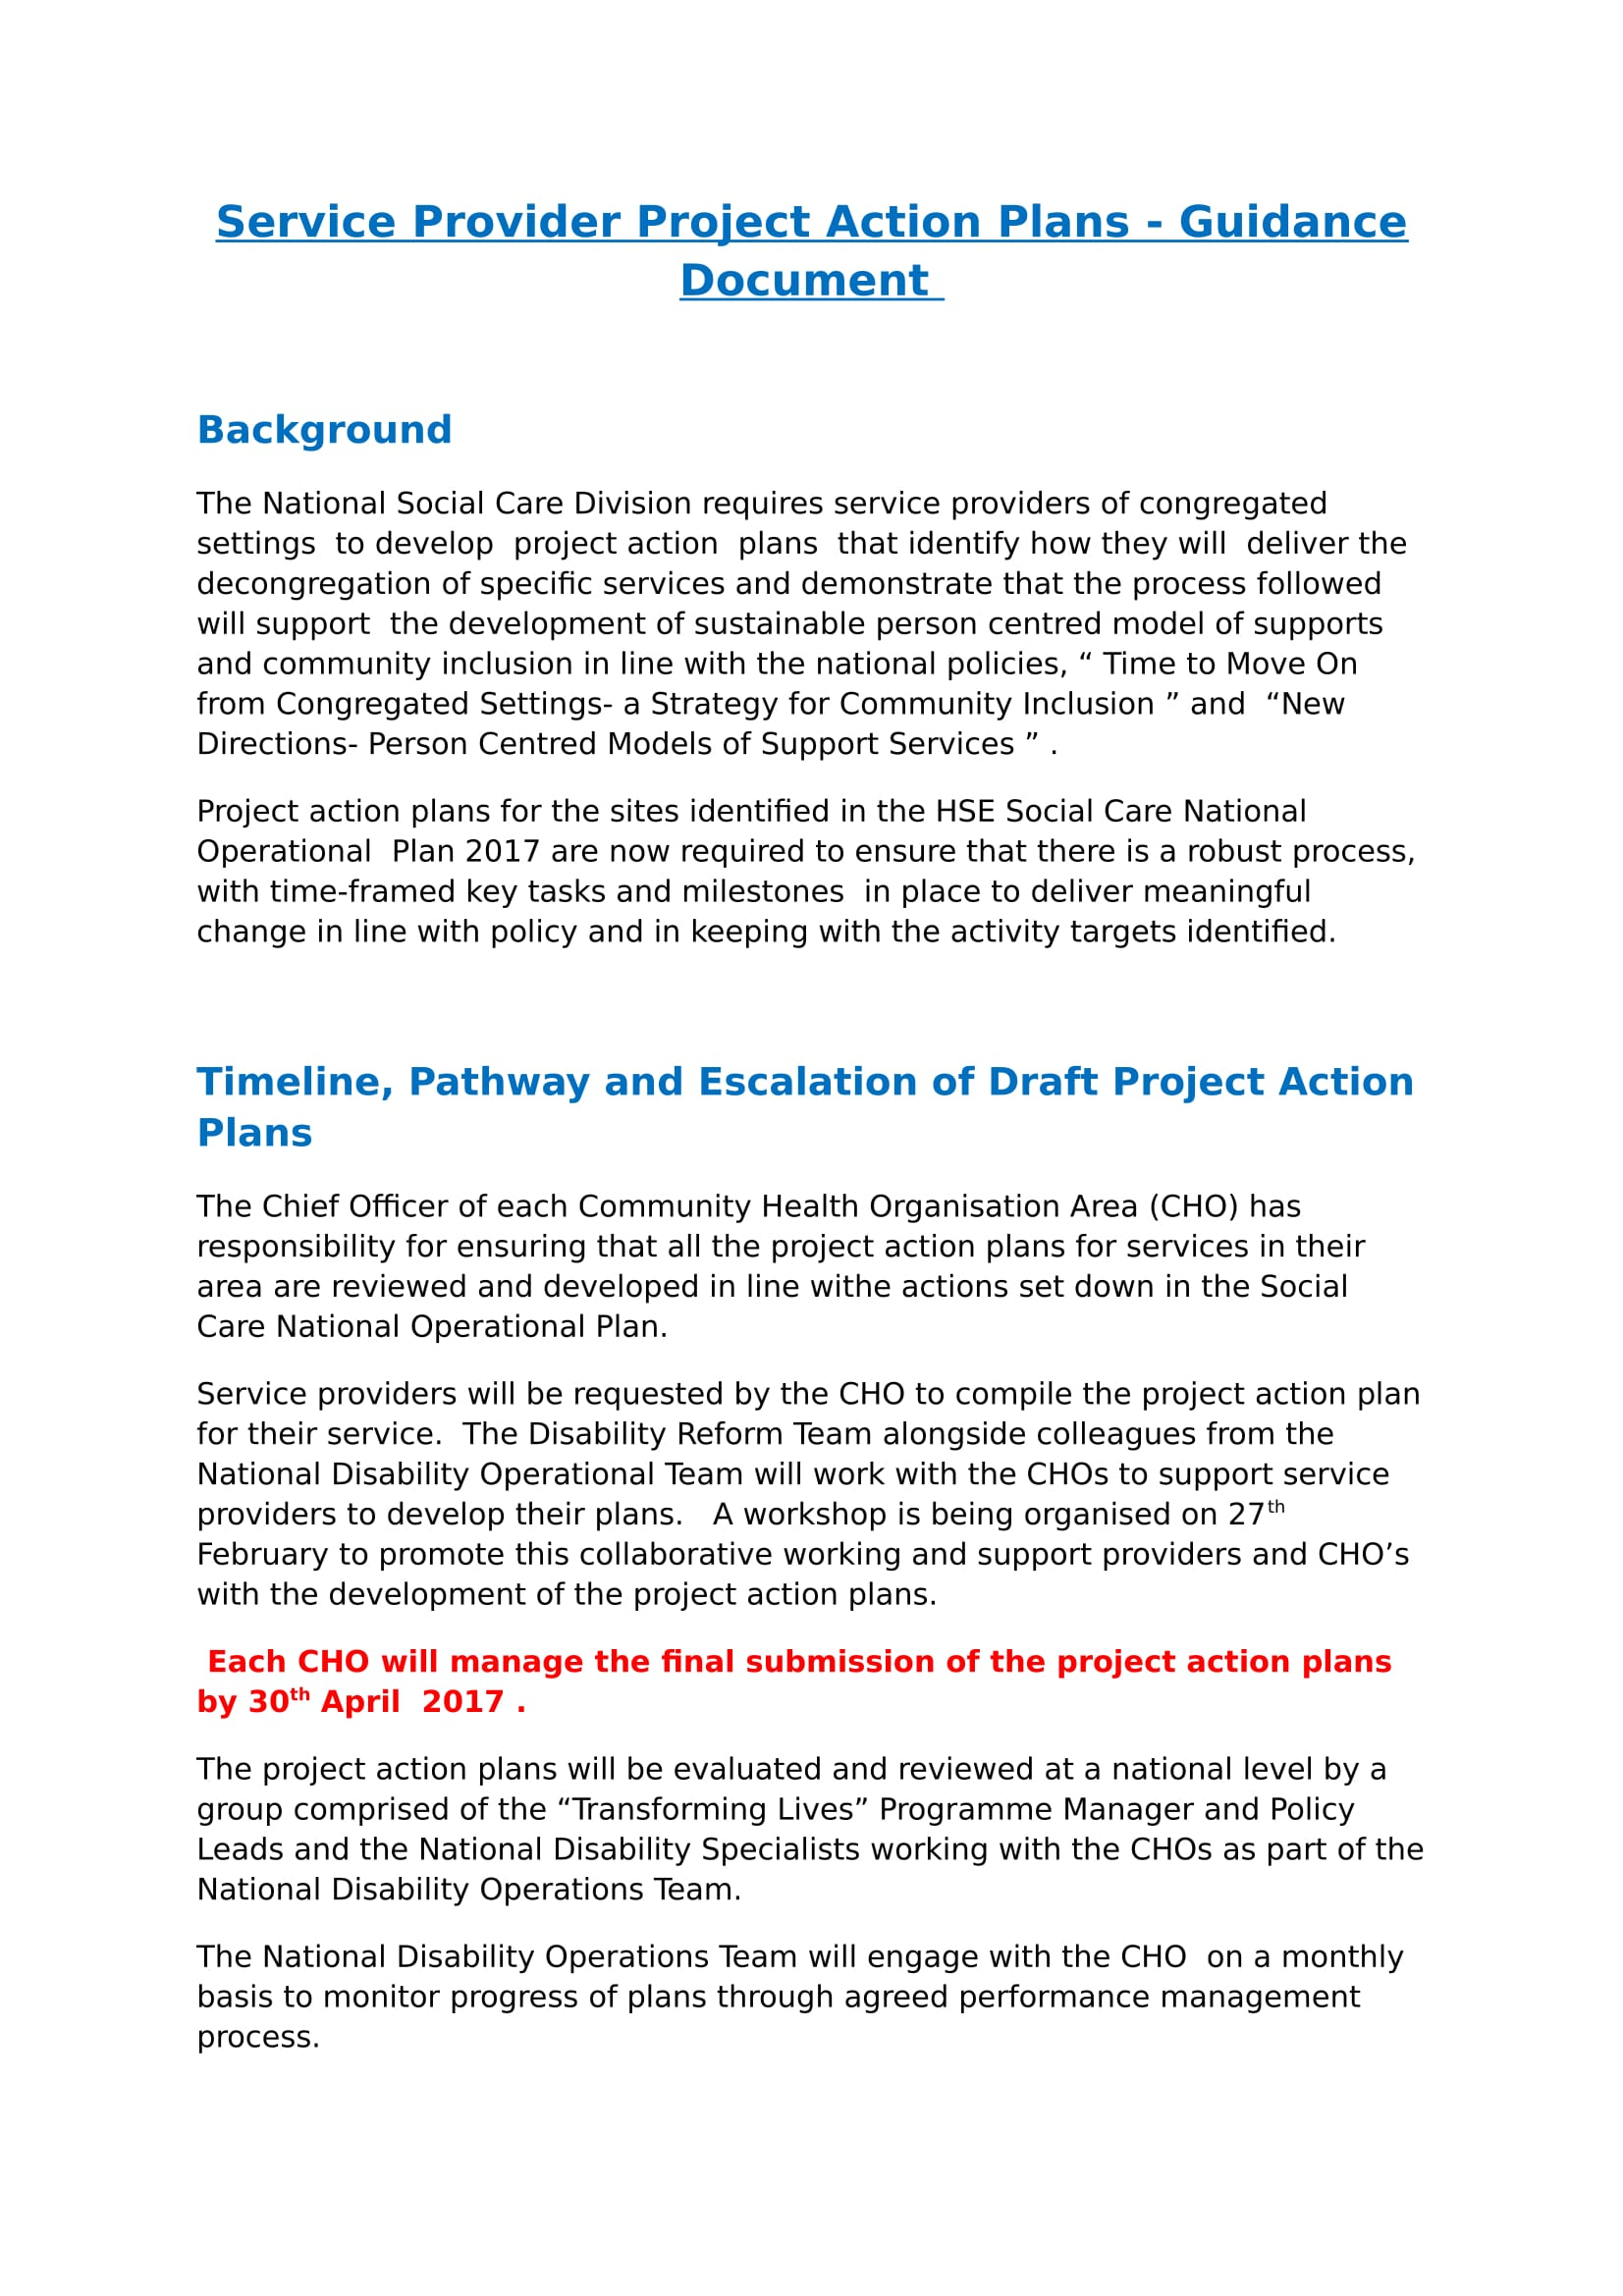 project action plans guidance document example 1